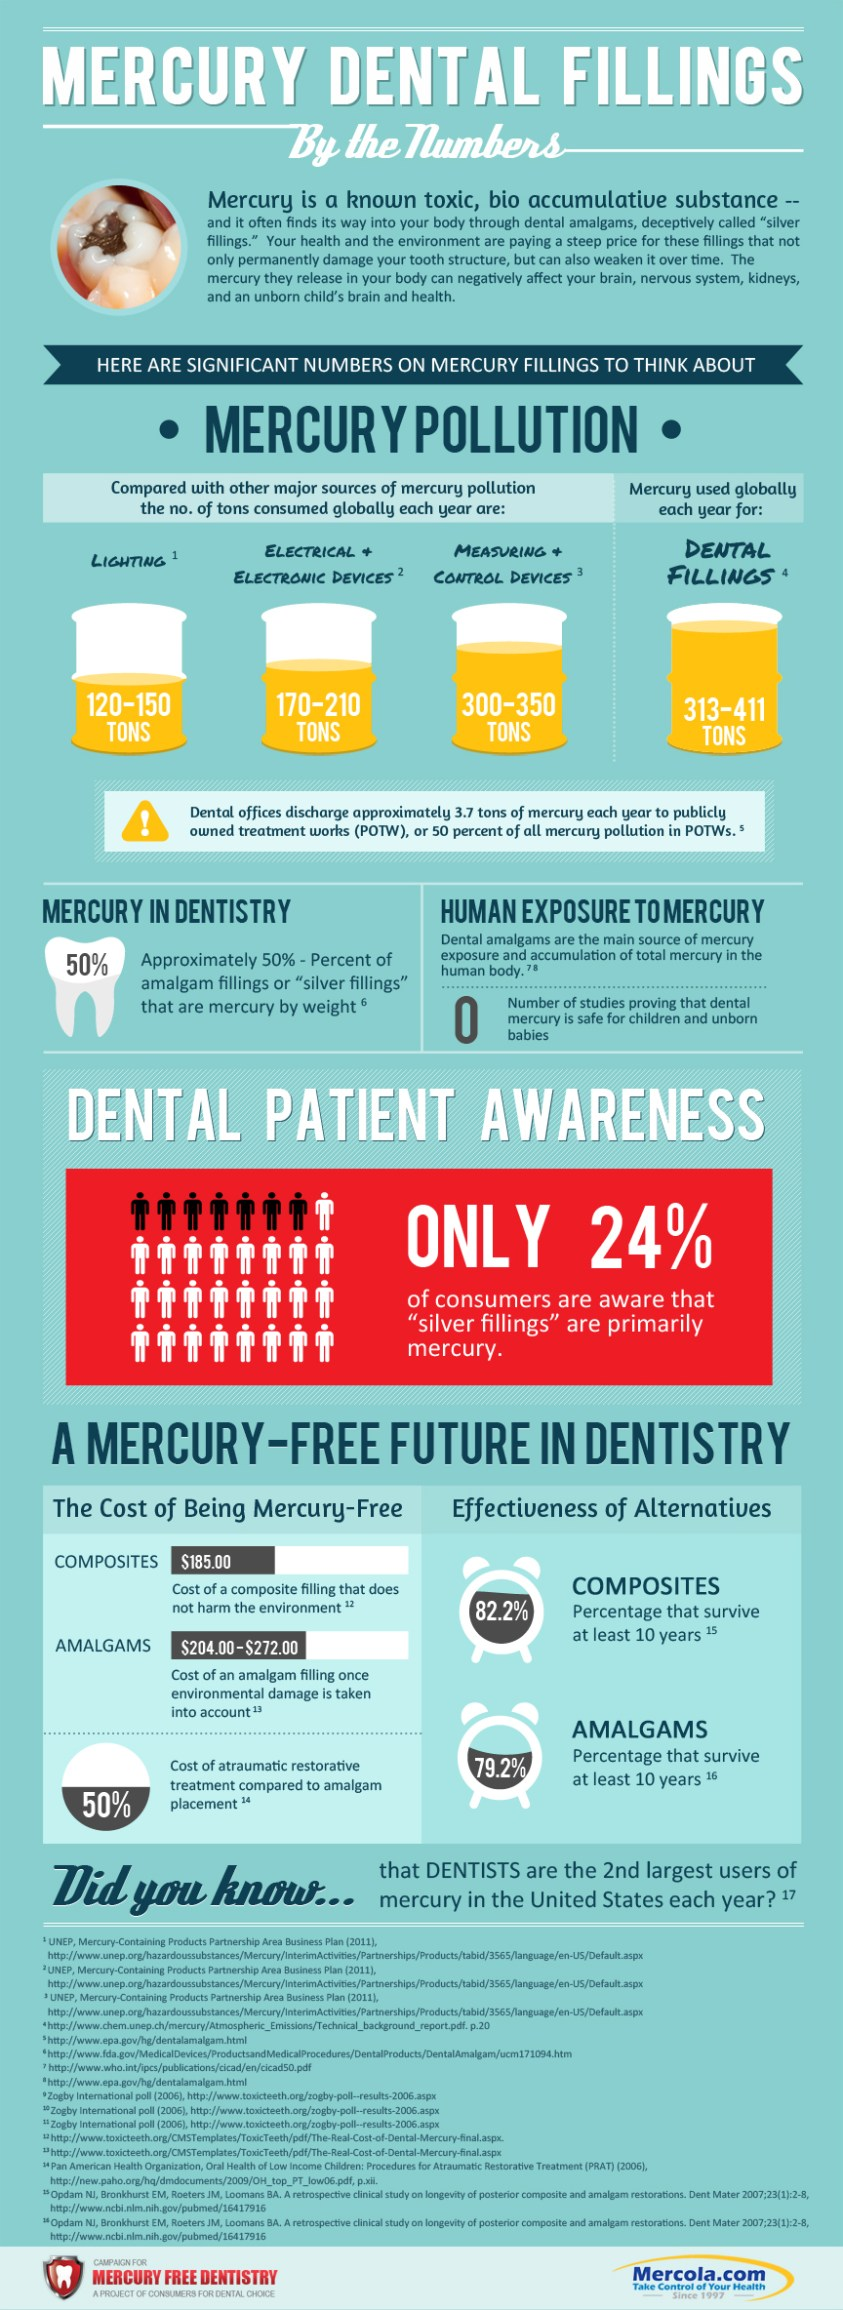 mercury-dental-fillings-highres